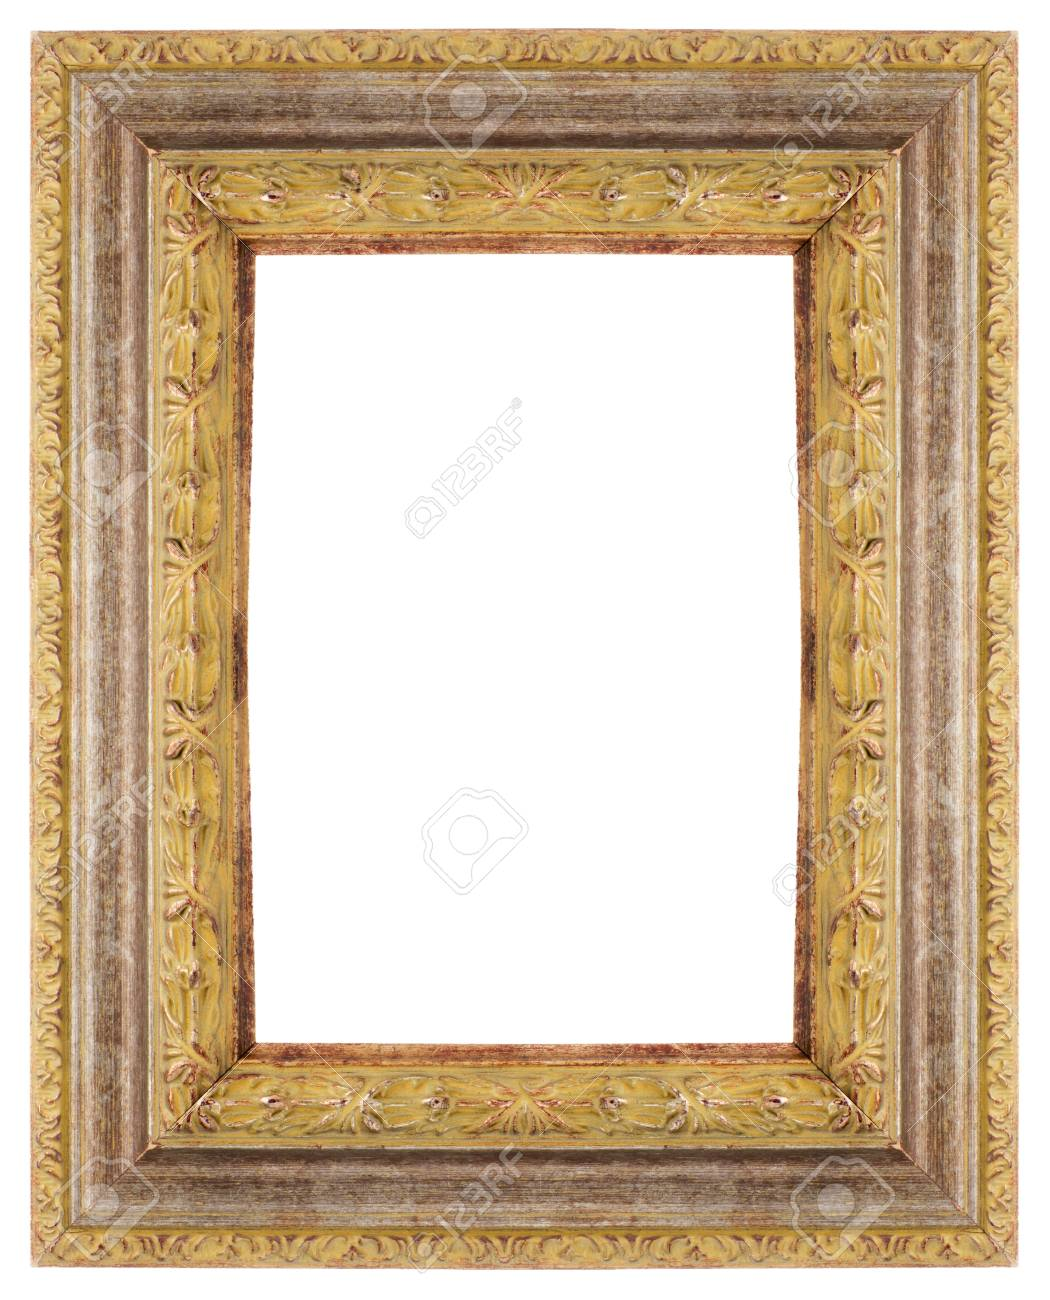 Wooden Frame For Paintings Or Photographs. Stock Photo, Picture And ...